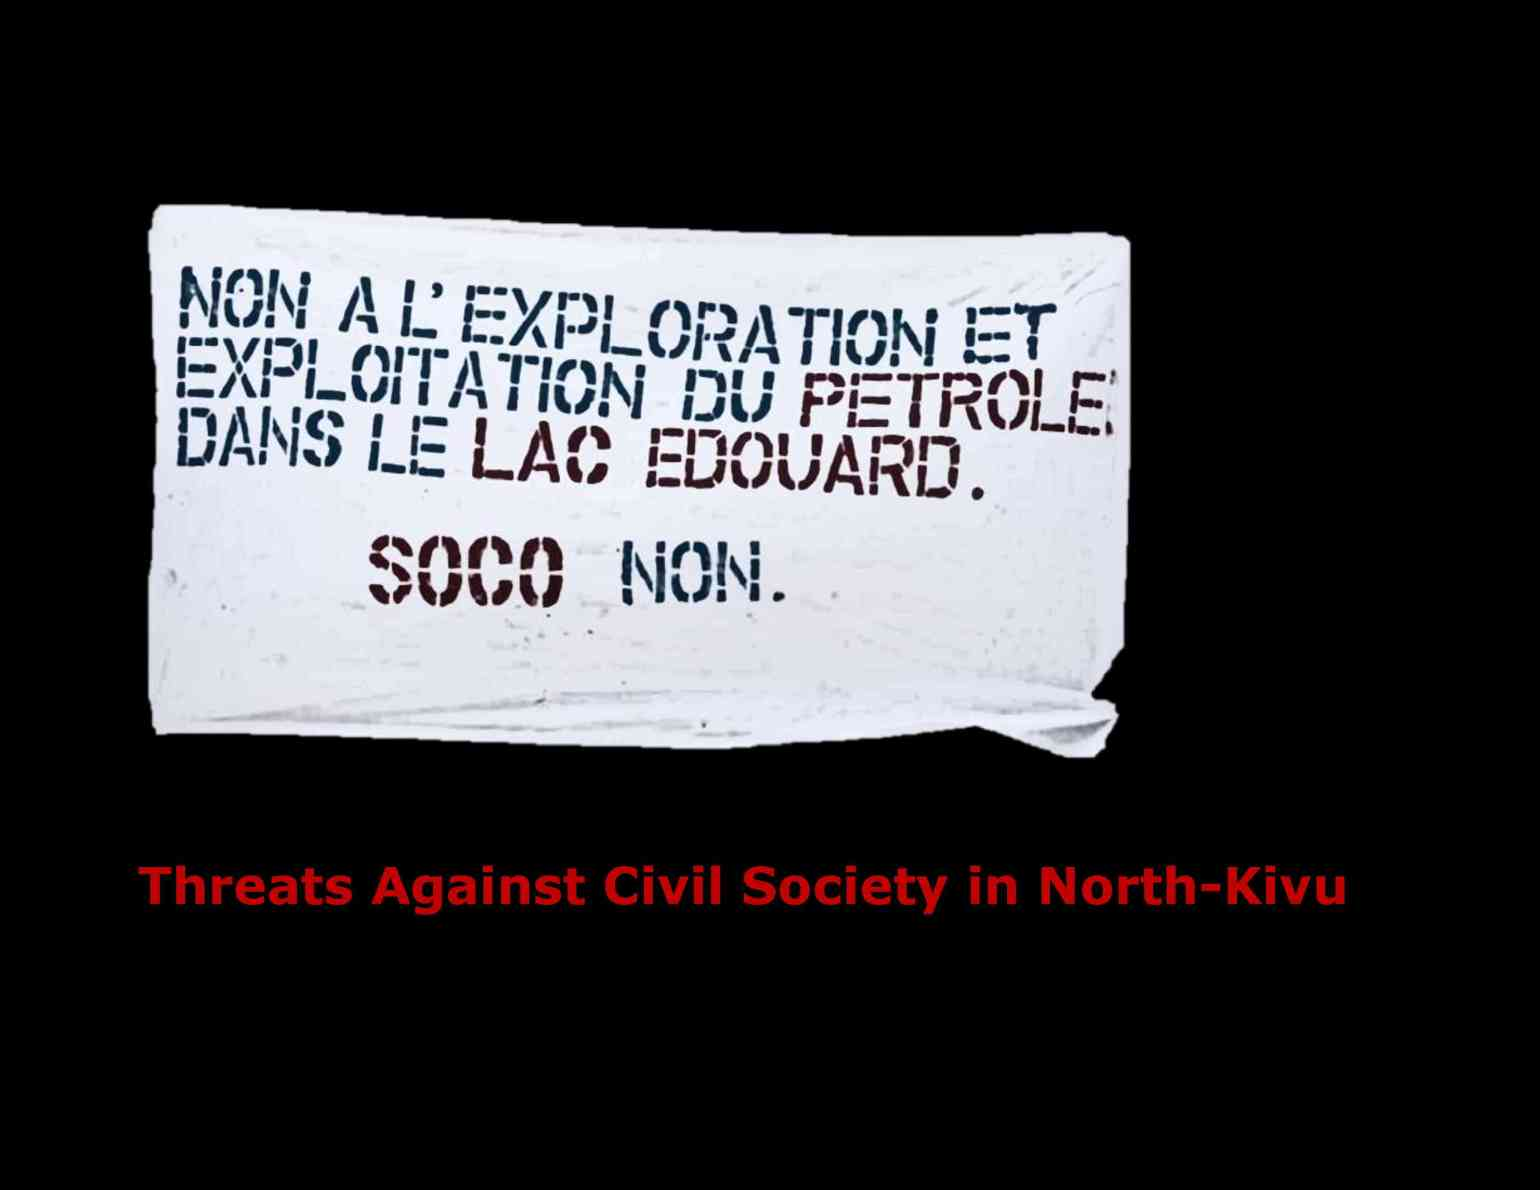 Threats Against Civil Society in North1